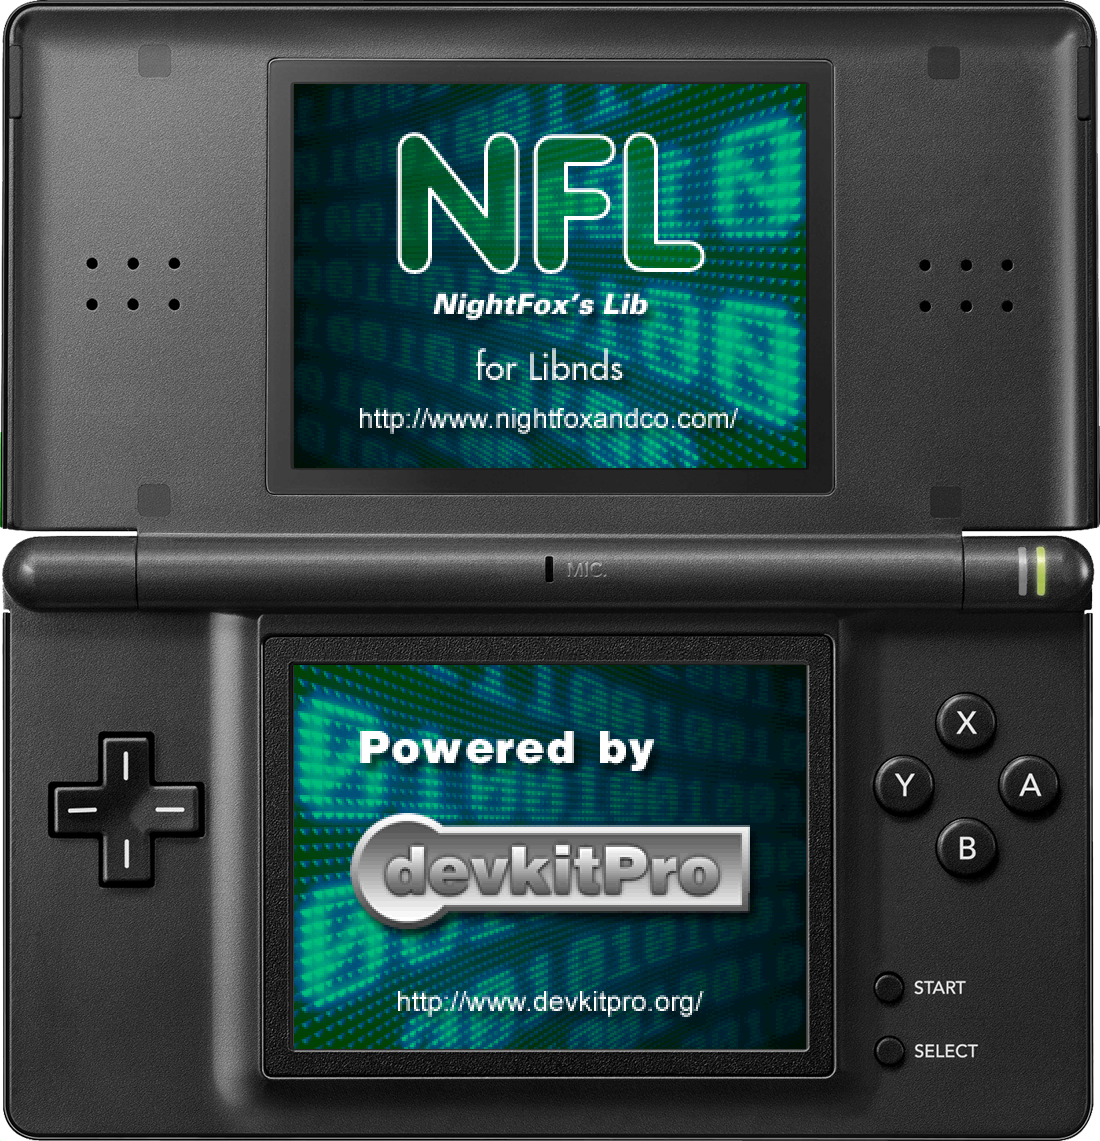 playstation: nds